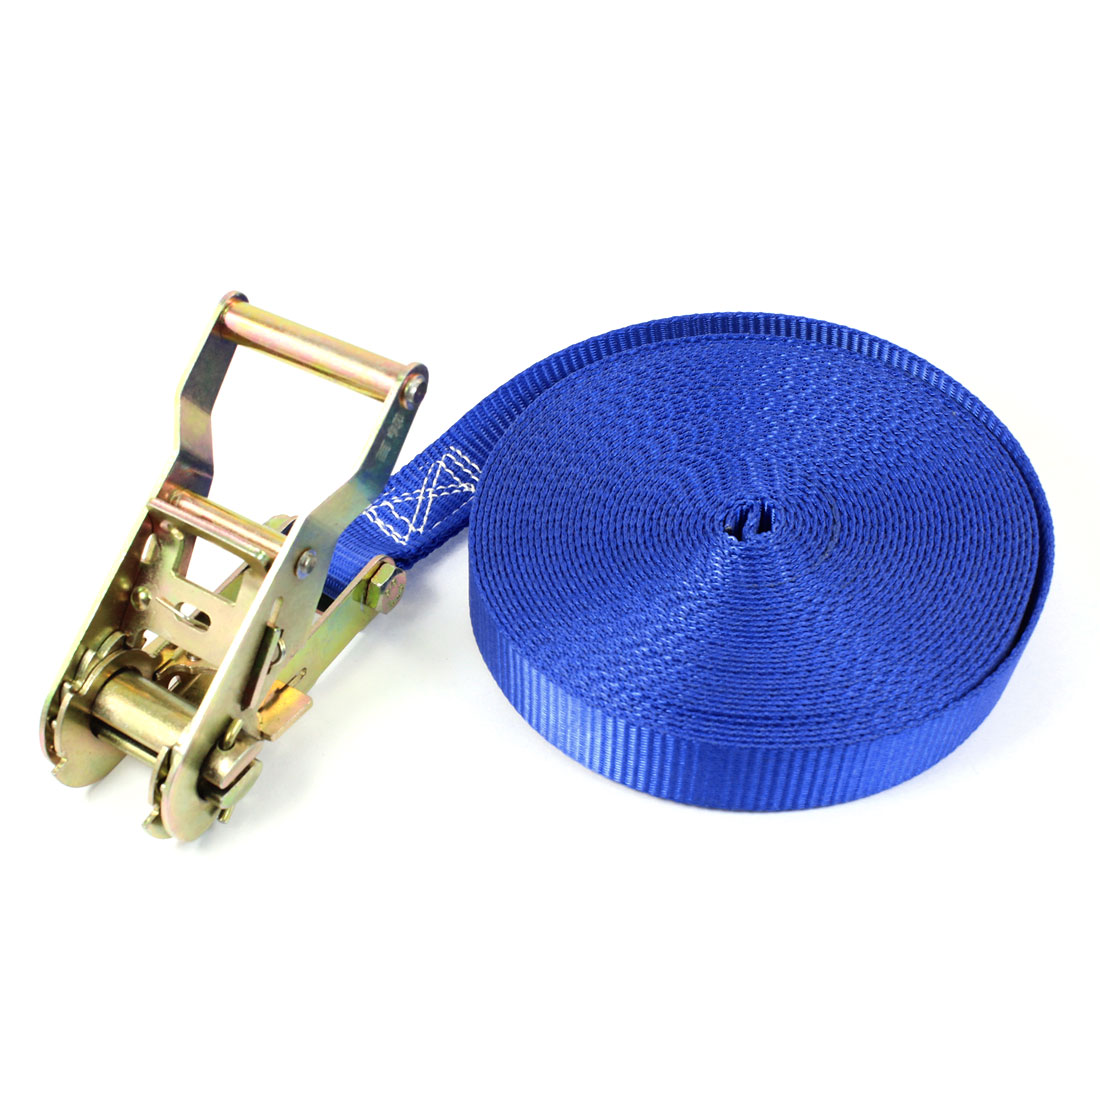 Travel Luggage Binding Band Metal Ratchet Tie Down Strap 10M 33ft Blue